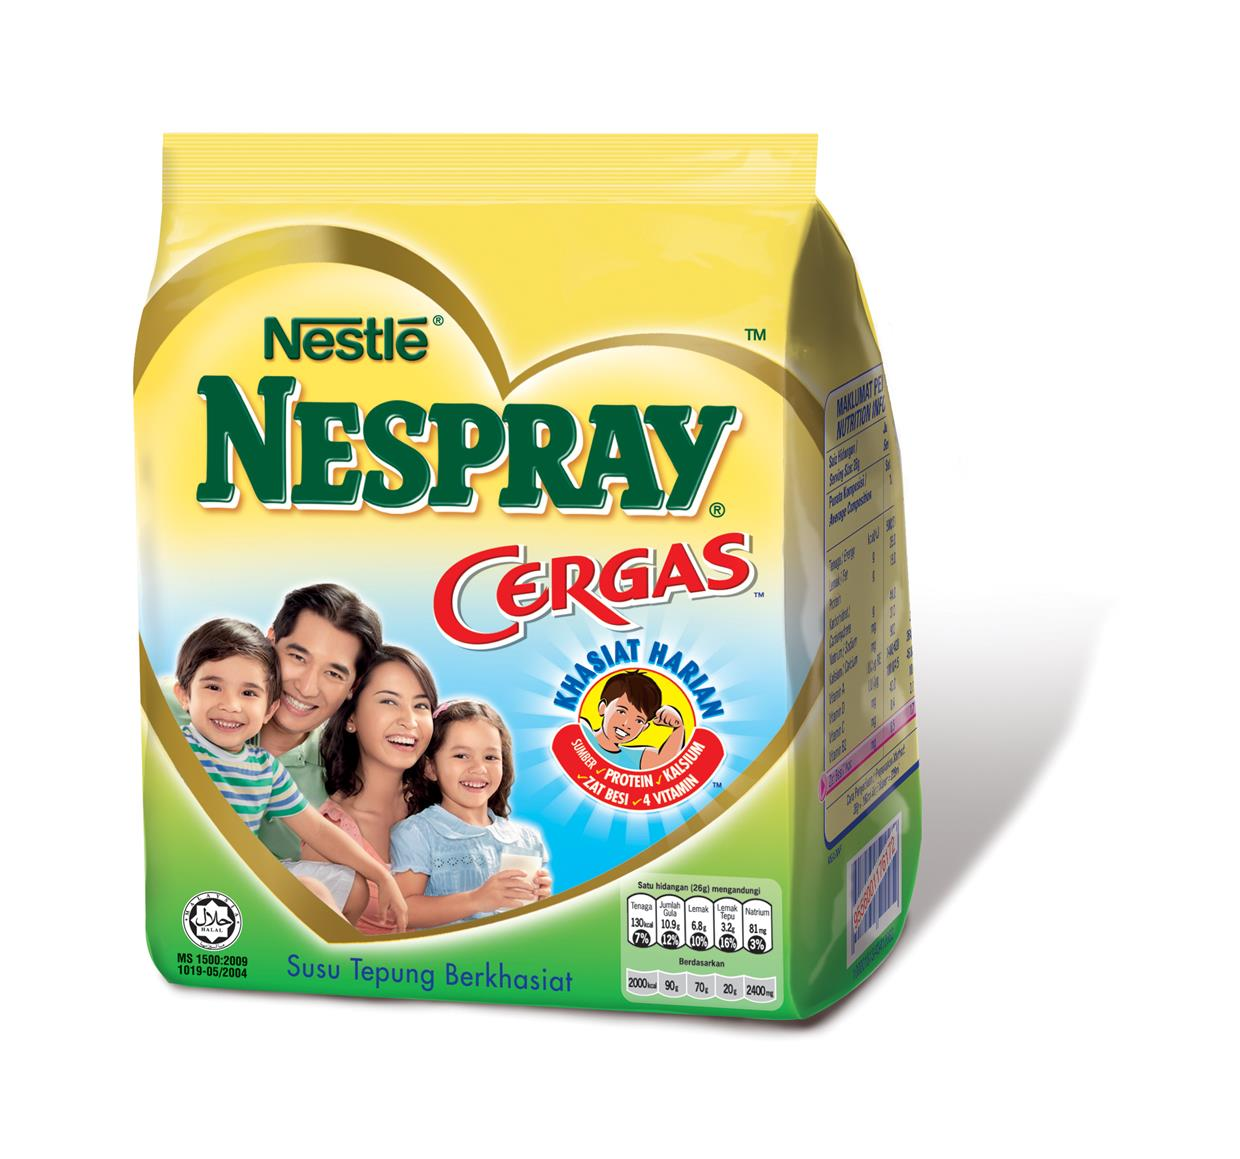 NESPRAY Cergas Milk Powder (300g/550g/1.6kg)